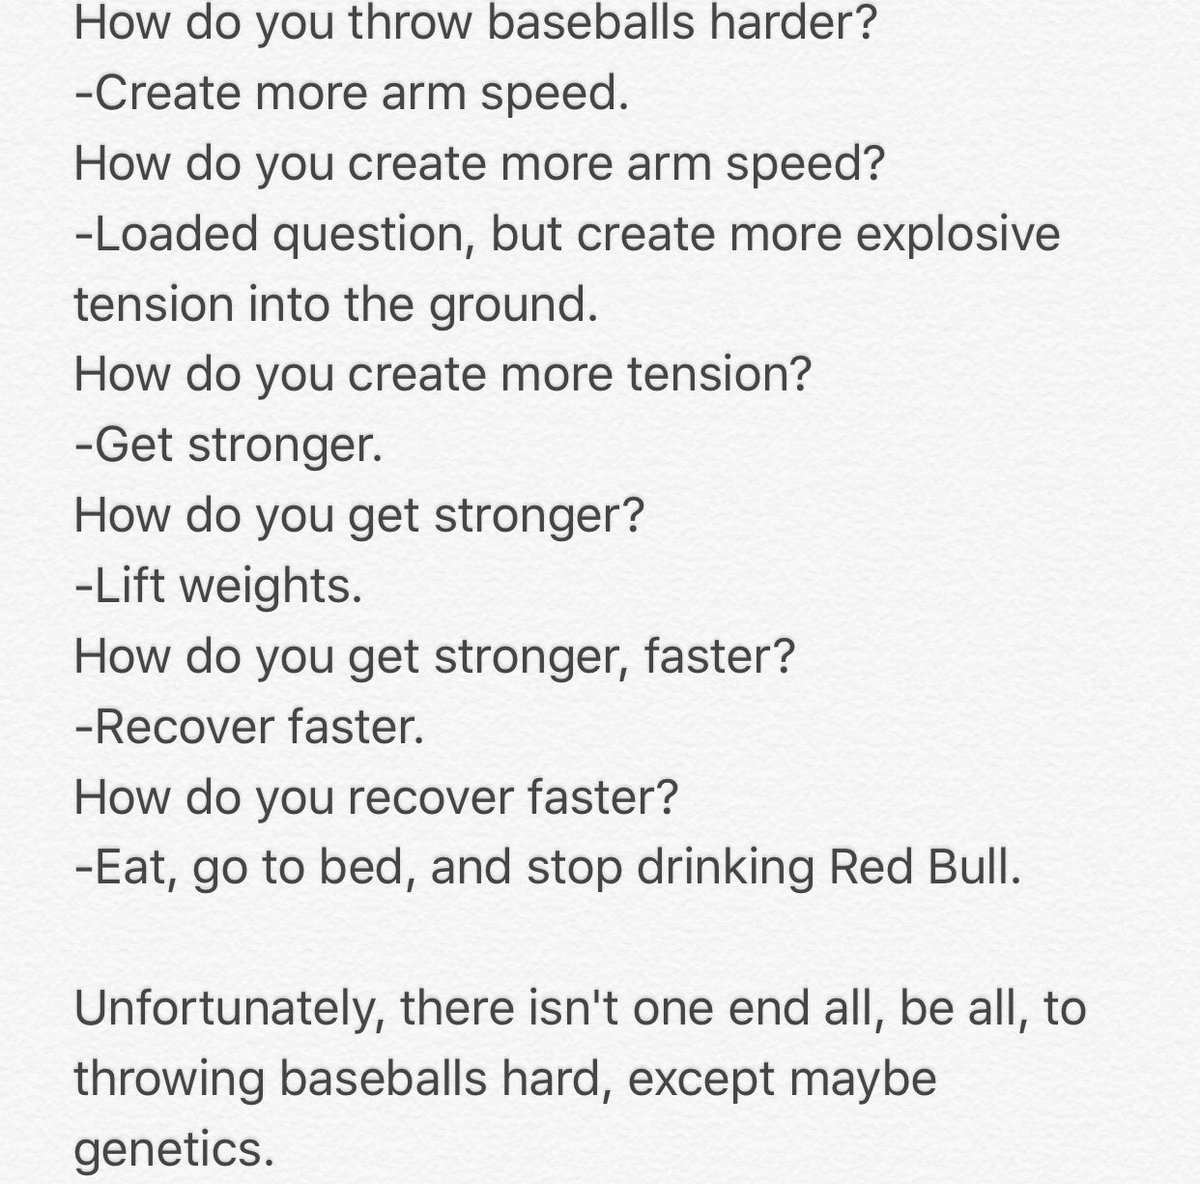 How to increase pitching velocity for baseball image